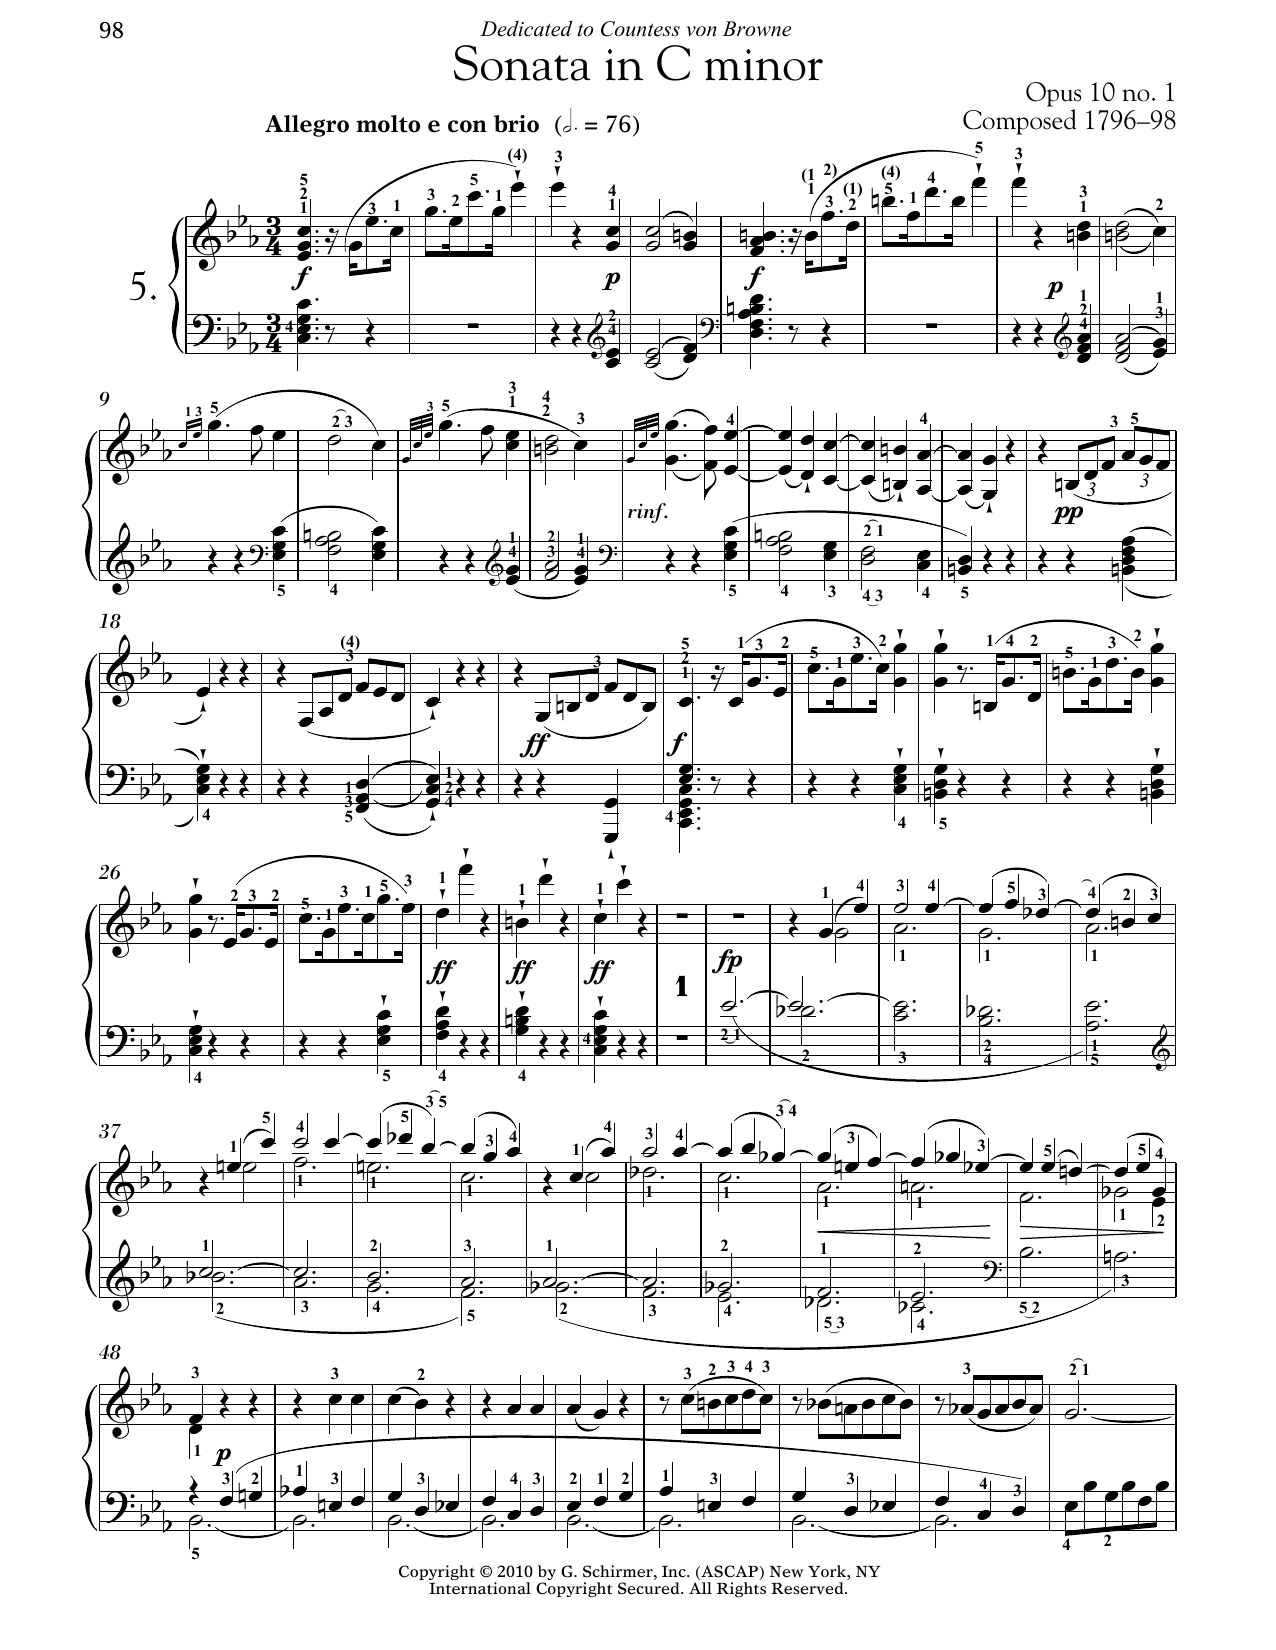 Piano Sonata No. 5 In C Minor, Op. 10, No. 1 (Piano Solo)